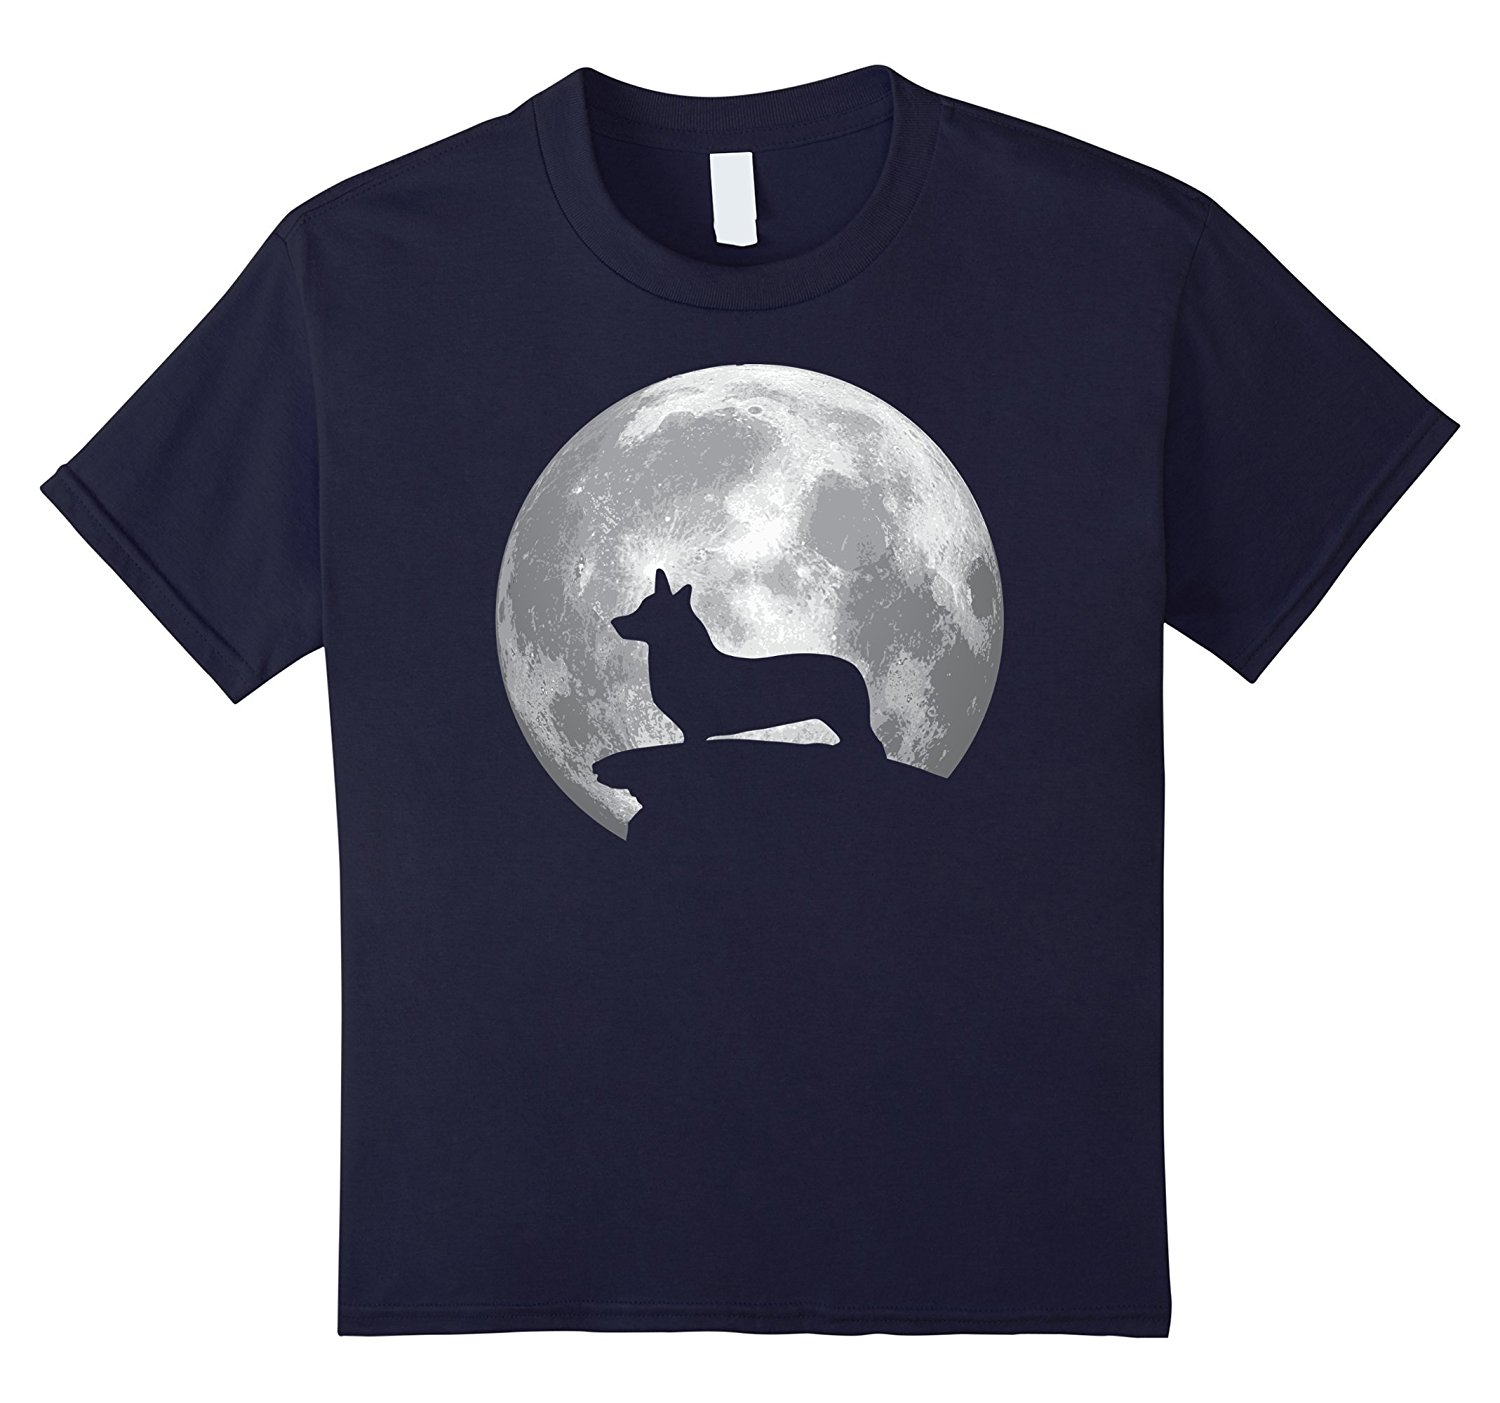 2018 T Shirts For Men Cotton Summer Style Welsh Corgi Cardigan Dog T-shirt Halloween Costume Cheap Tee Shirts